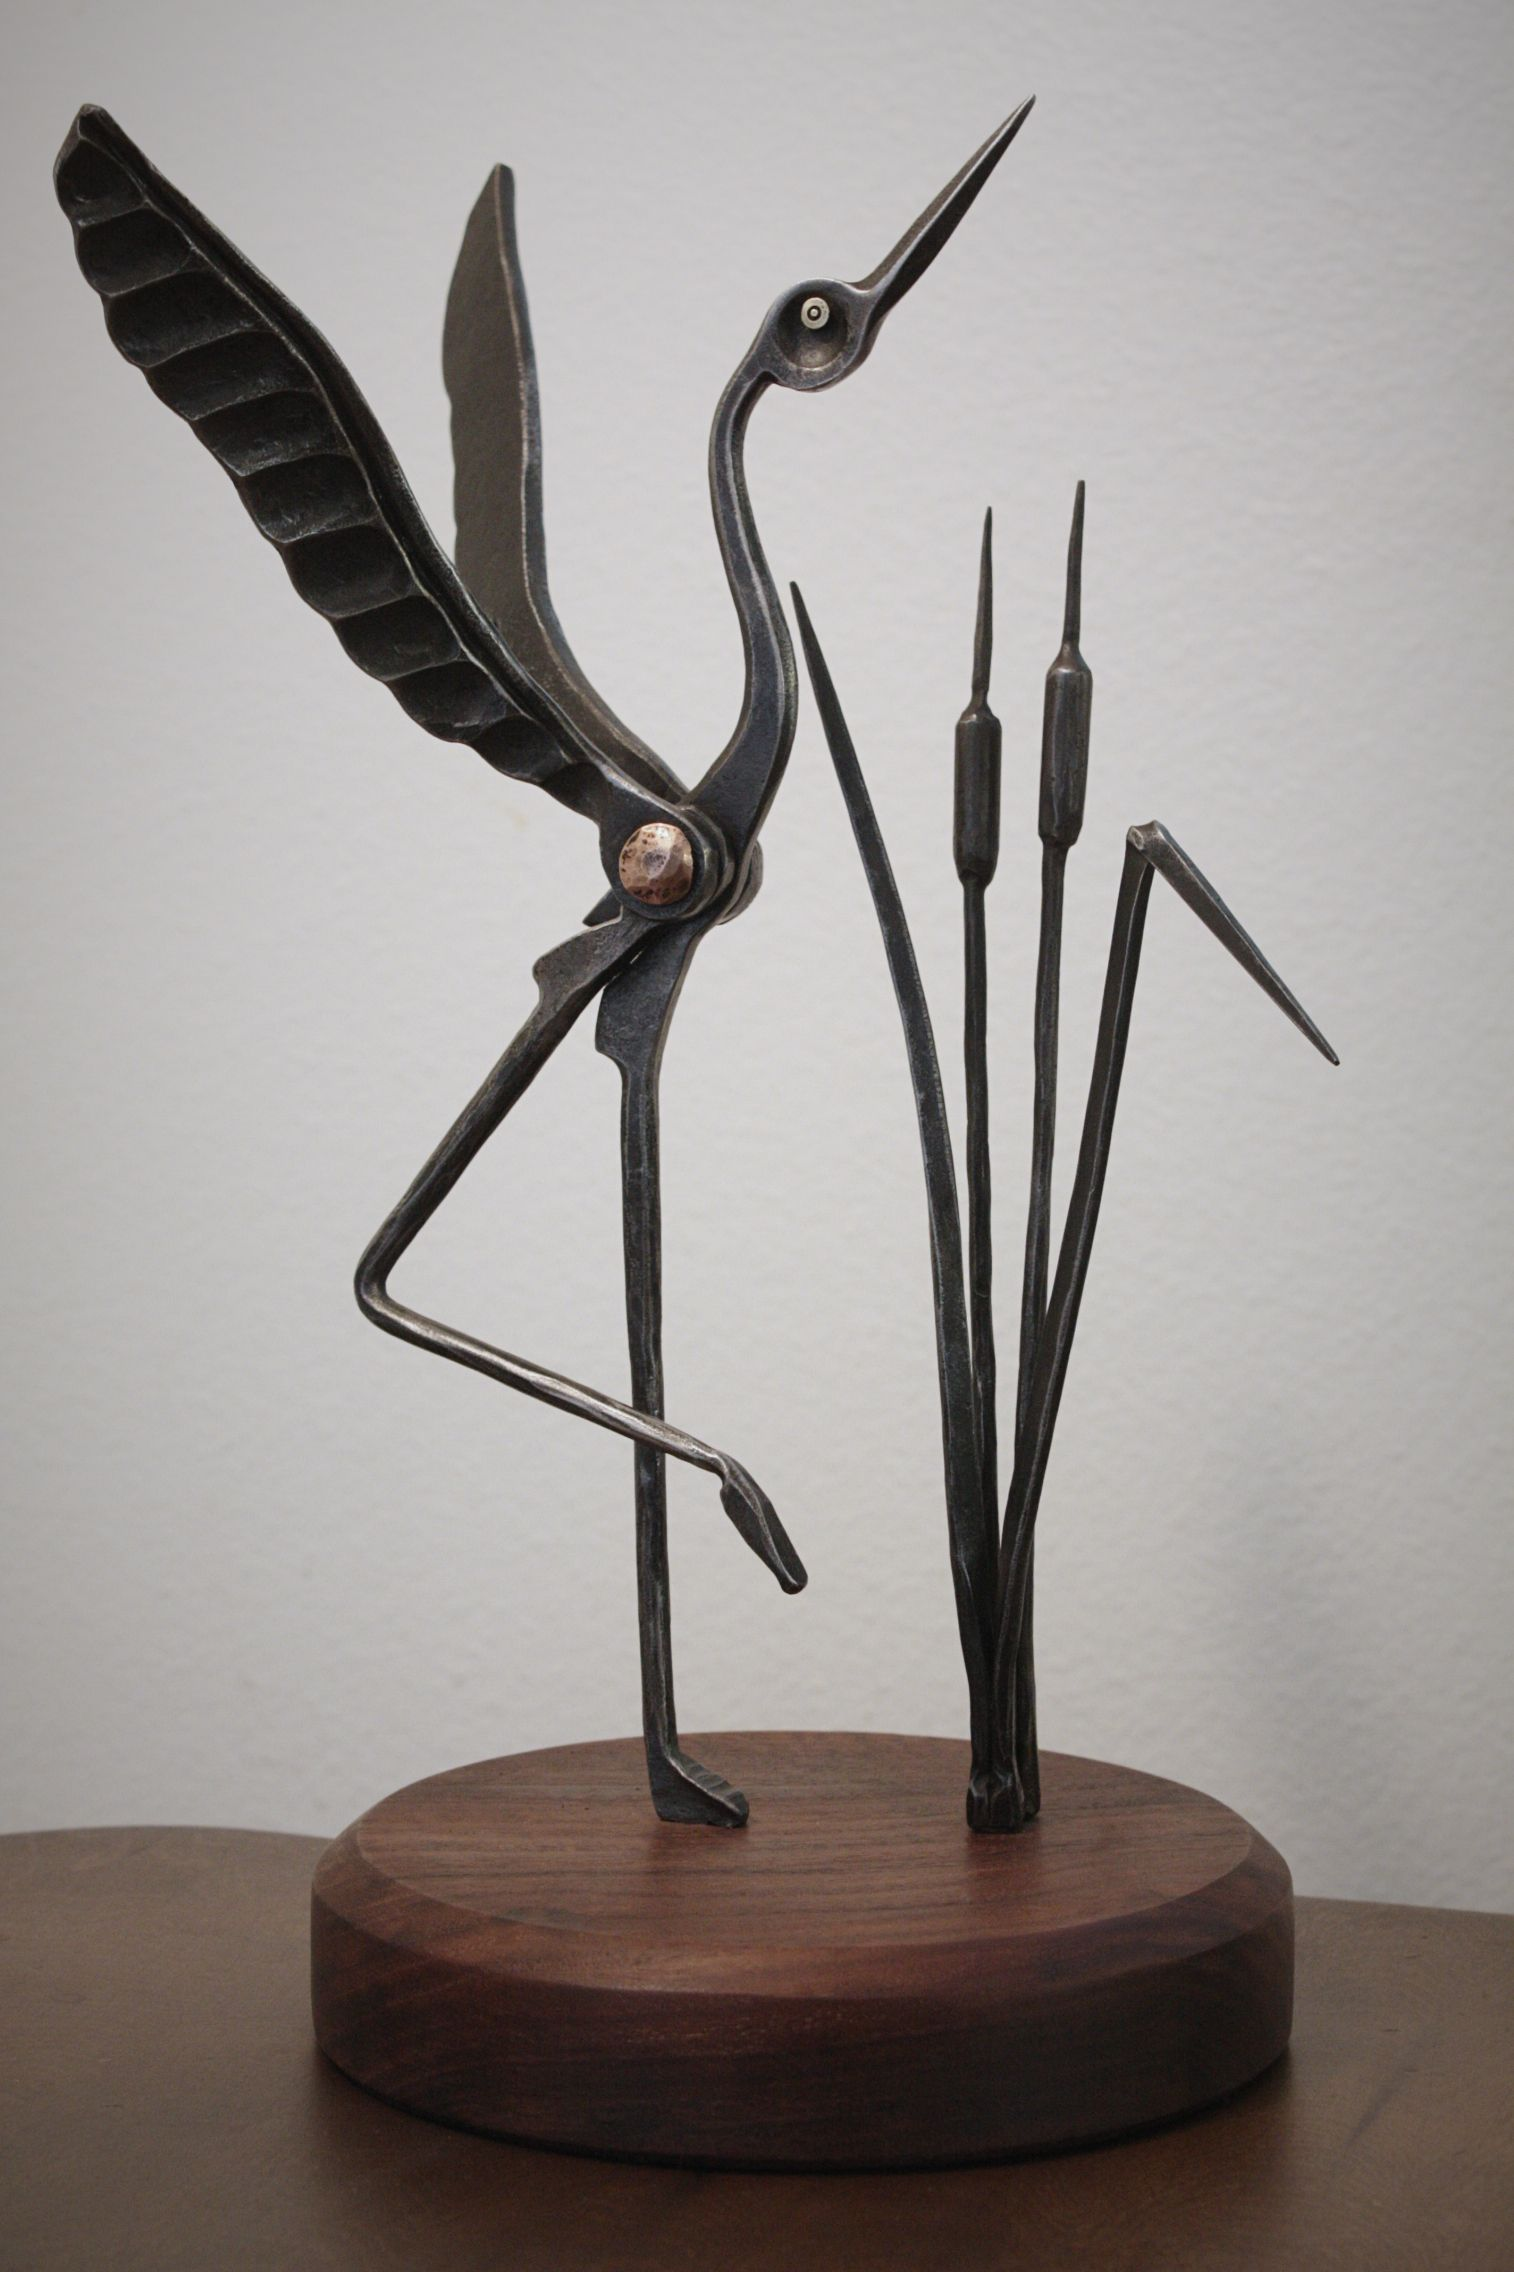 Added a base and cattails to the Brazeal style crane. By Jakob Faram